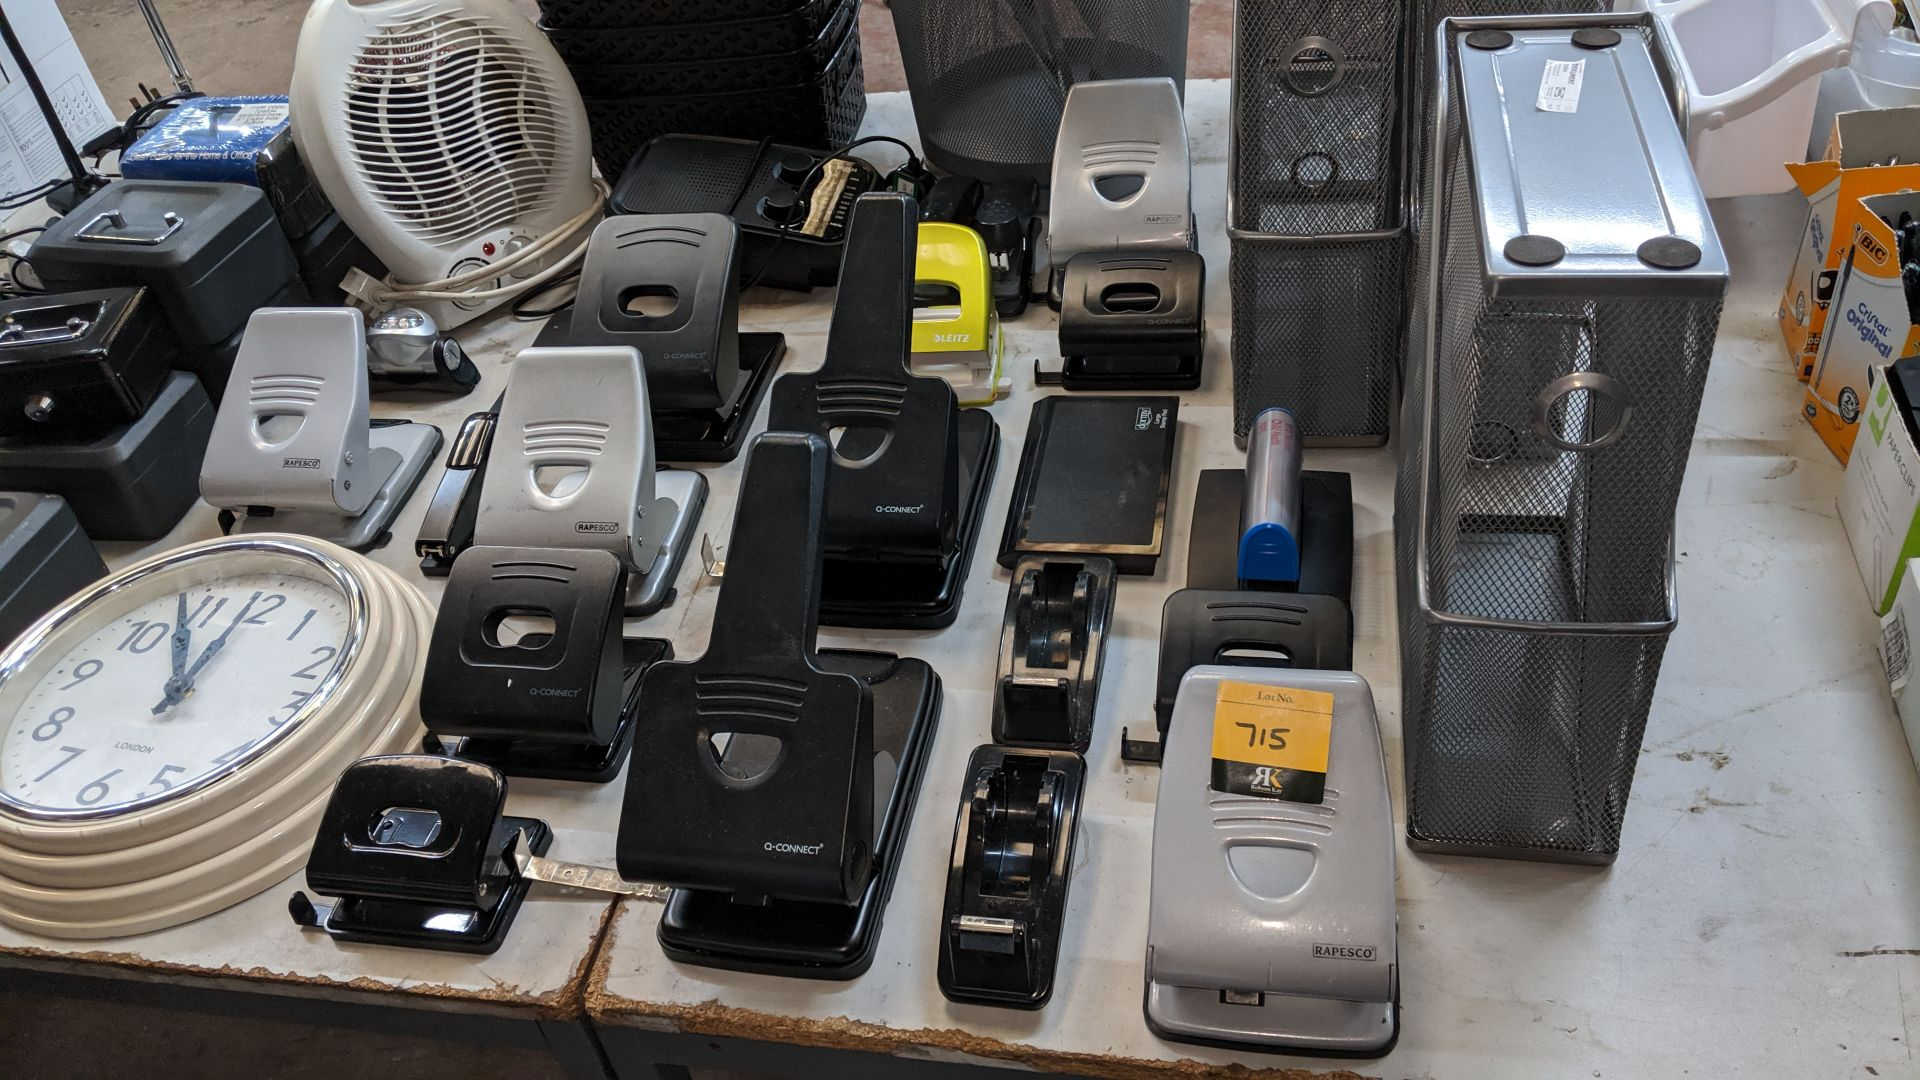 Lot 715 - Quantity of office filing trays, hole punches, tape dispensers, cash tins, stationery & more. This